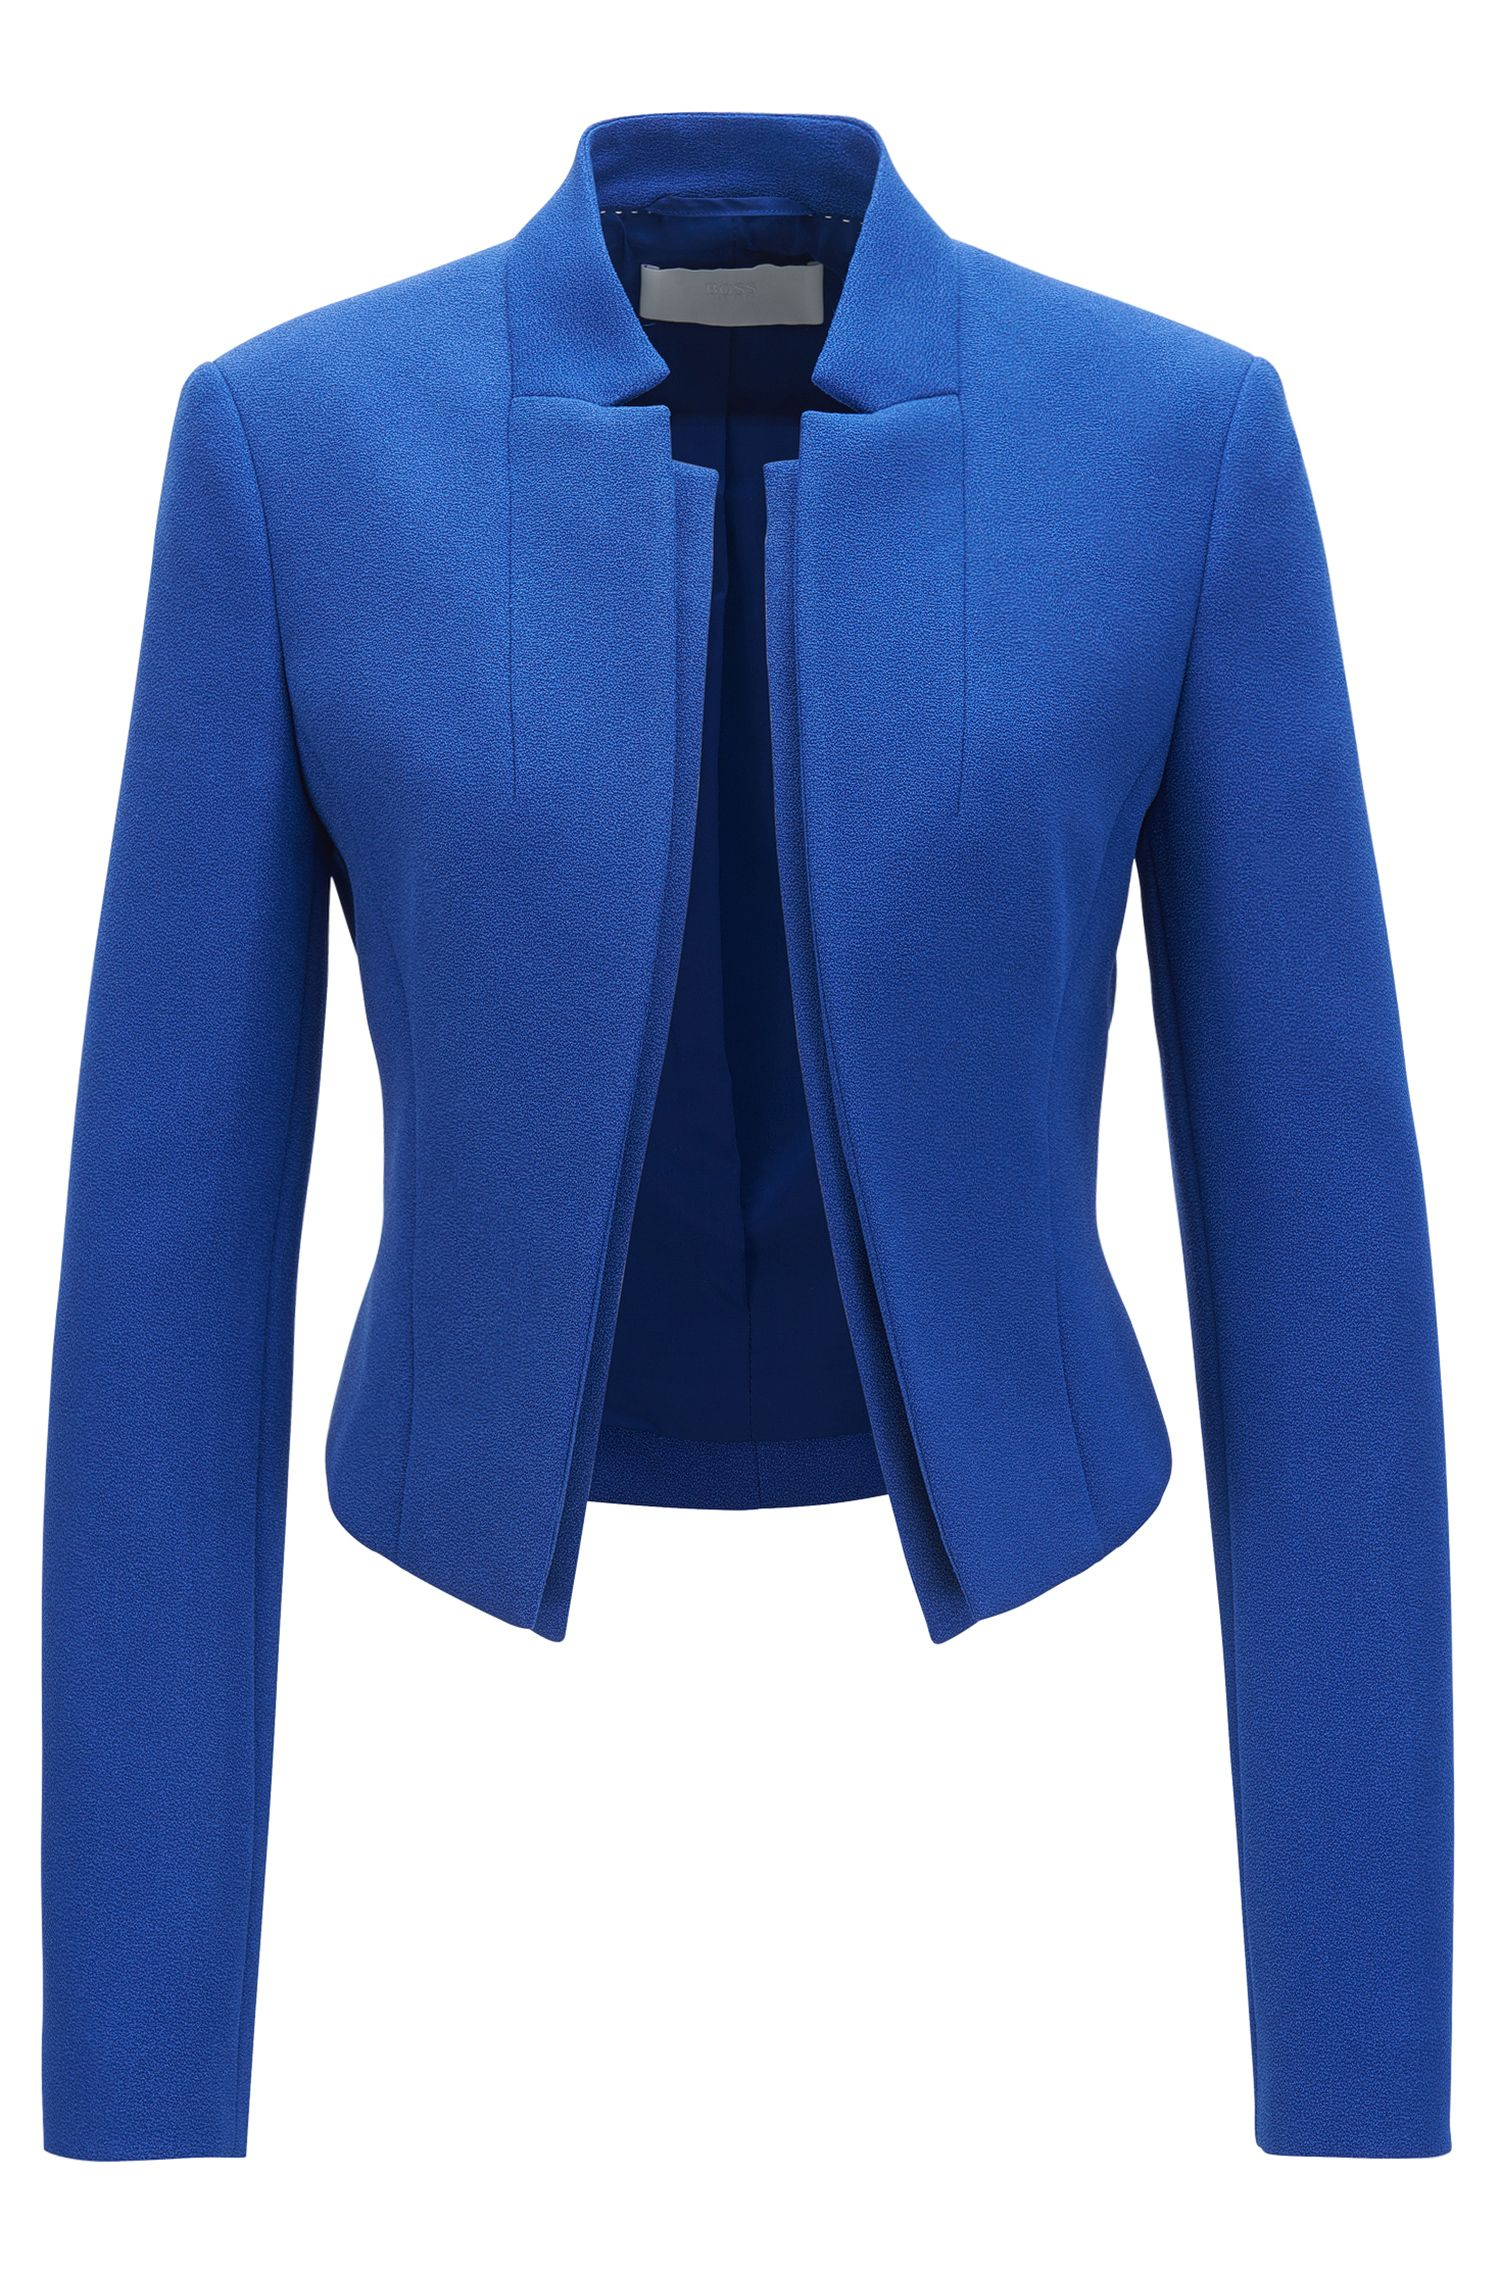 Regular-Fit Blazer aus Krepp mit doppellagigem Revers